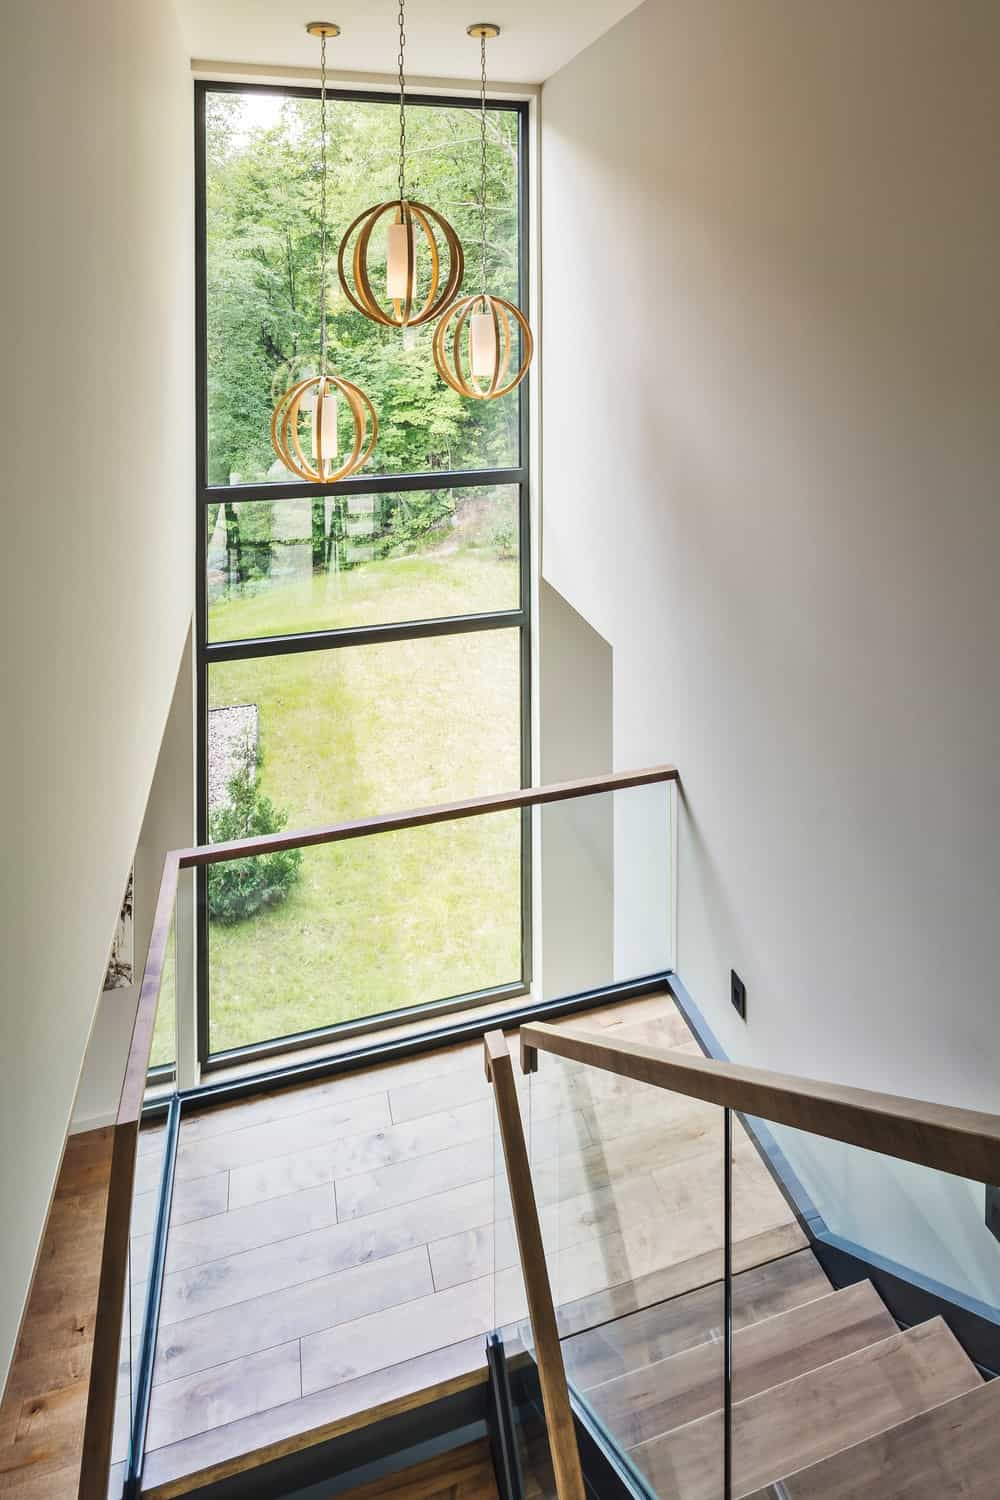 Staircase with hardwood floors and white walls together with pendant lights and glass window. Photo Credit: Ulysse Lemerise Bouchard